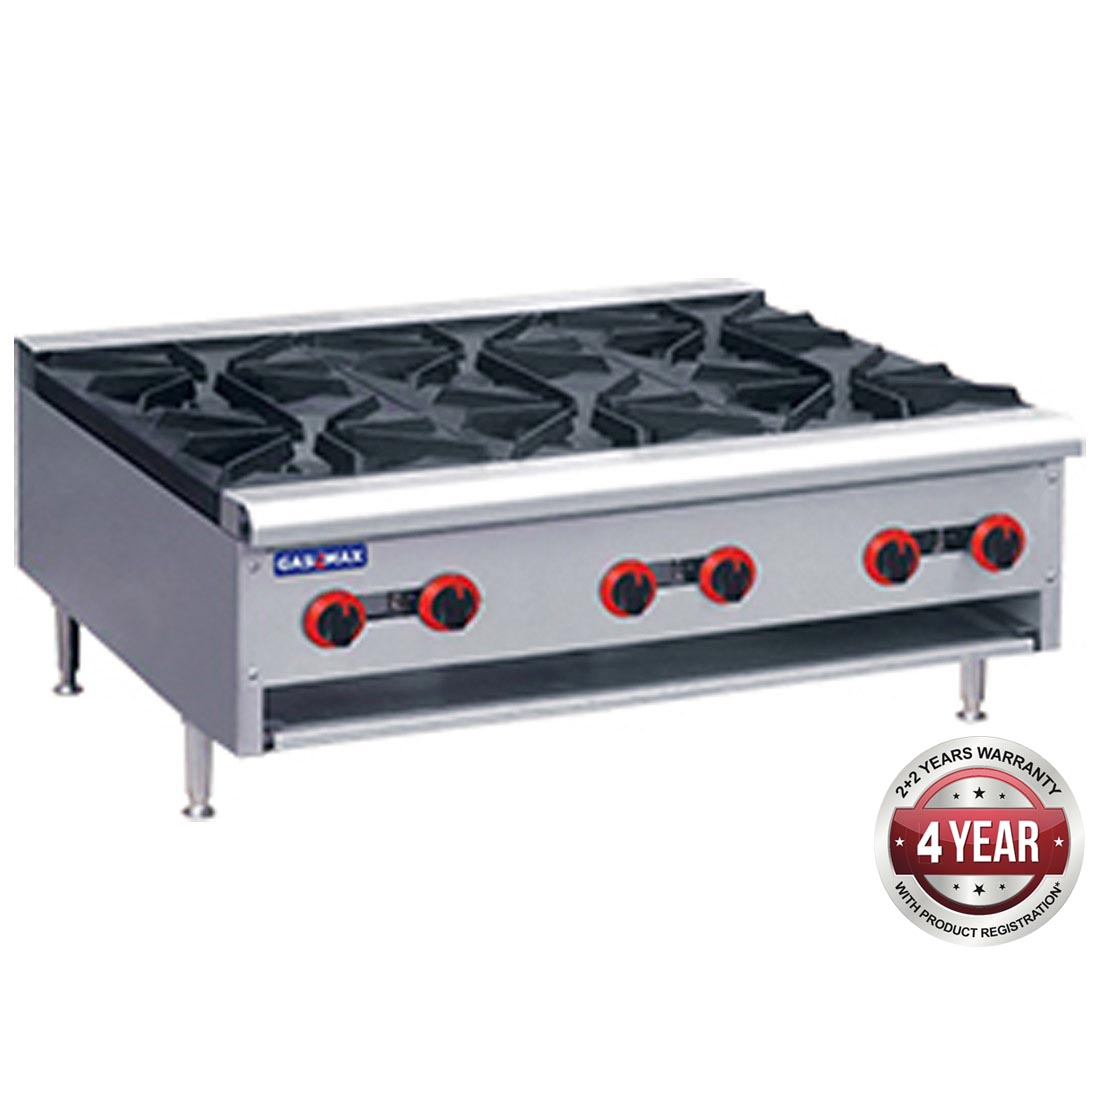 Gas Cook top 6 burner with Flame Failure - RB-6E